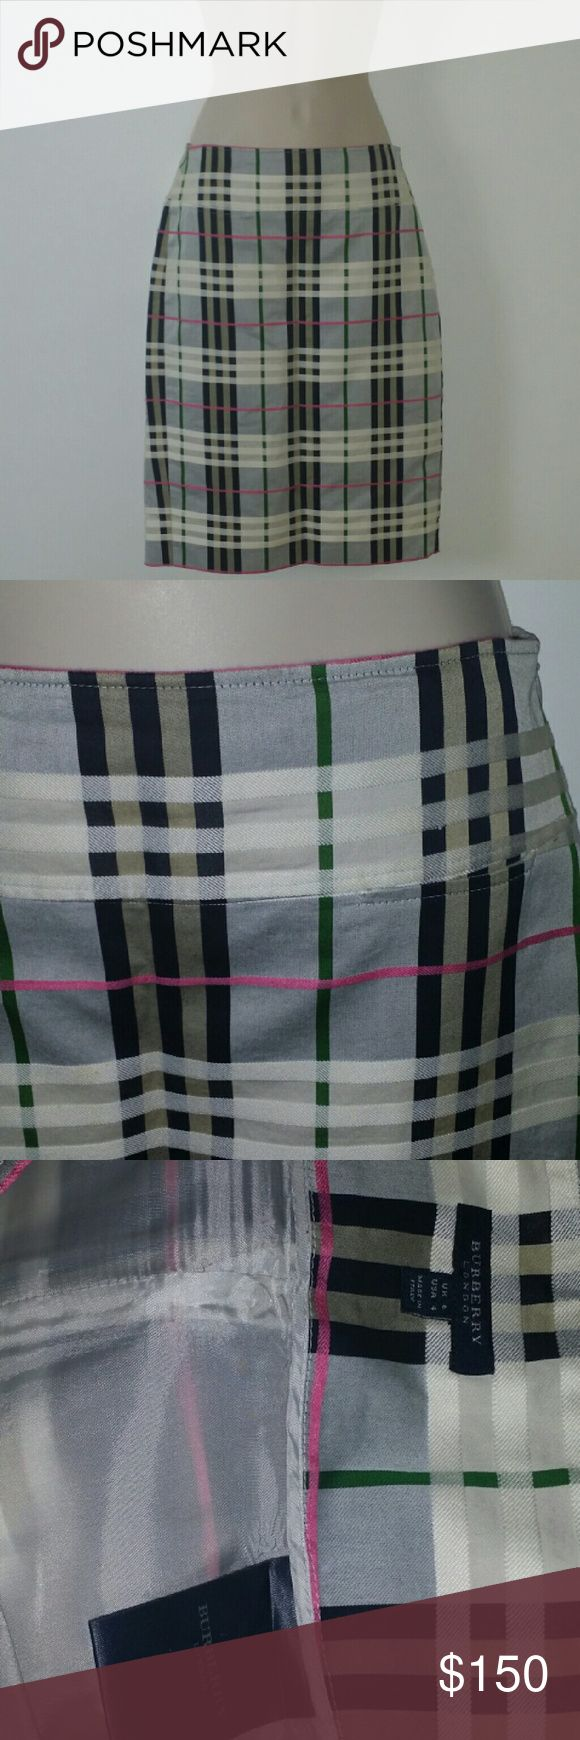 Auth. Burberry skirt size 4 stunning auth. Burberry skirt pencil line size 4 bought from Bloomingdales Burberry Skirts A-Line or Full